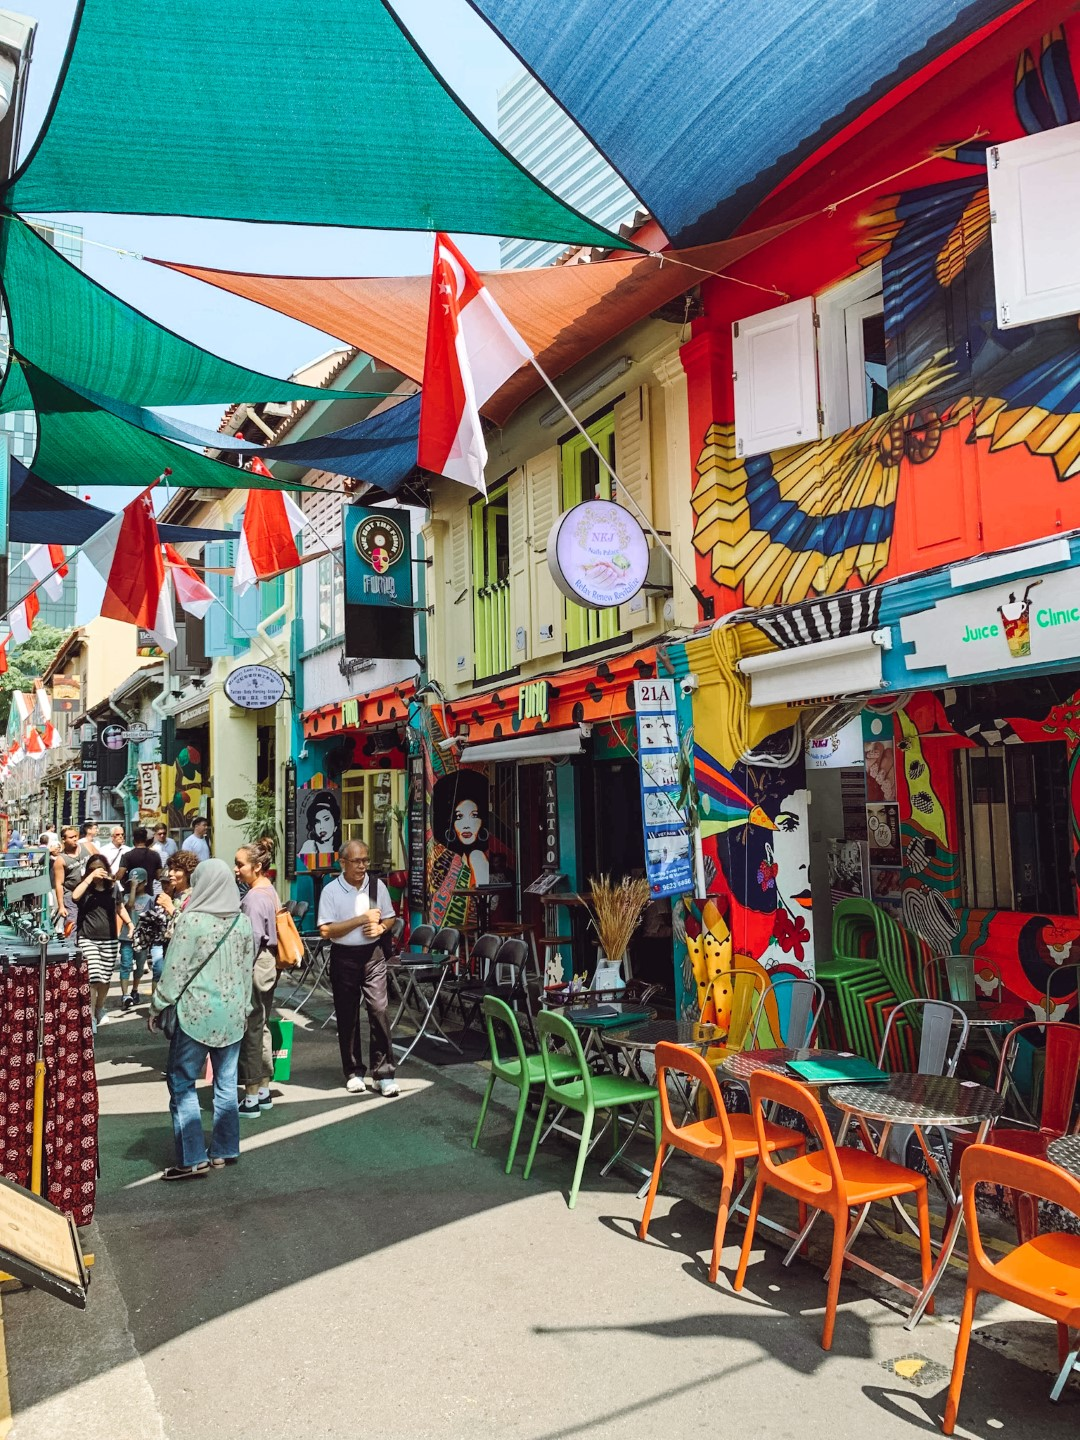 The bright and colorful Haji Lane, Singapore